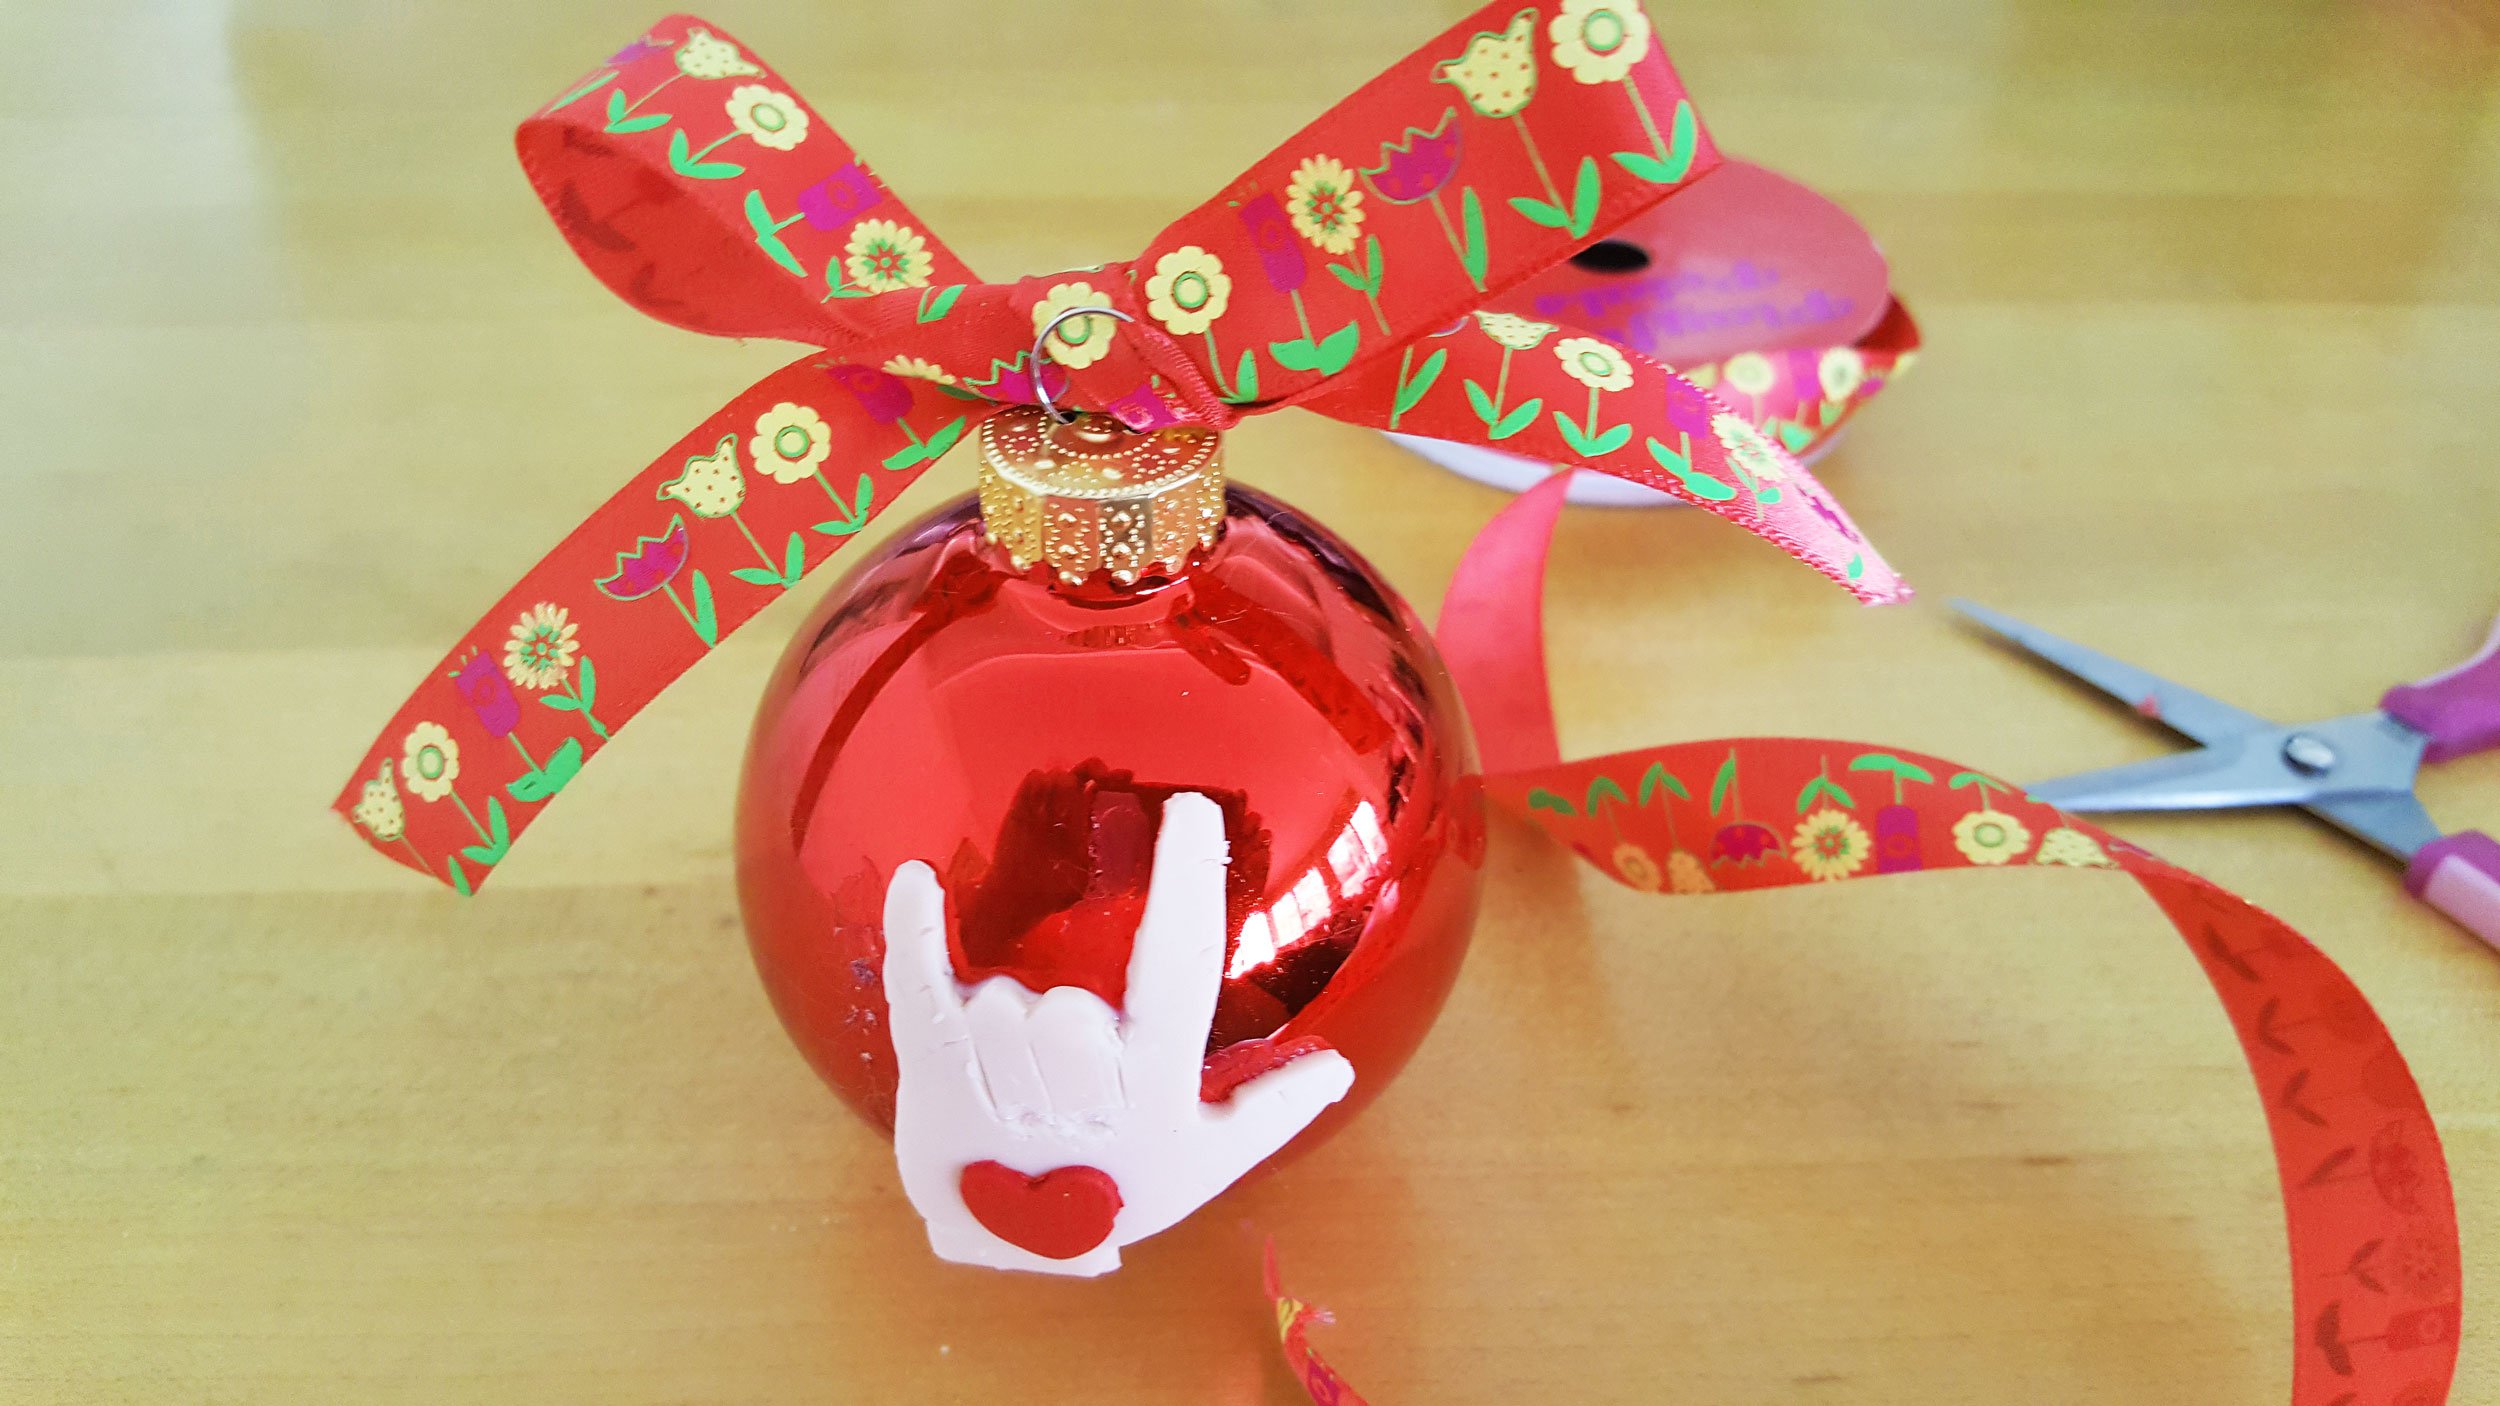 Ribbon tied on red glass ball ornament | OrnamentShop.com